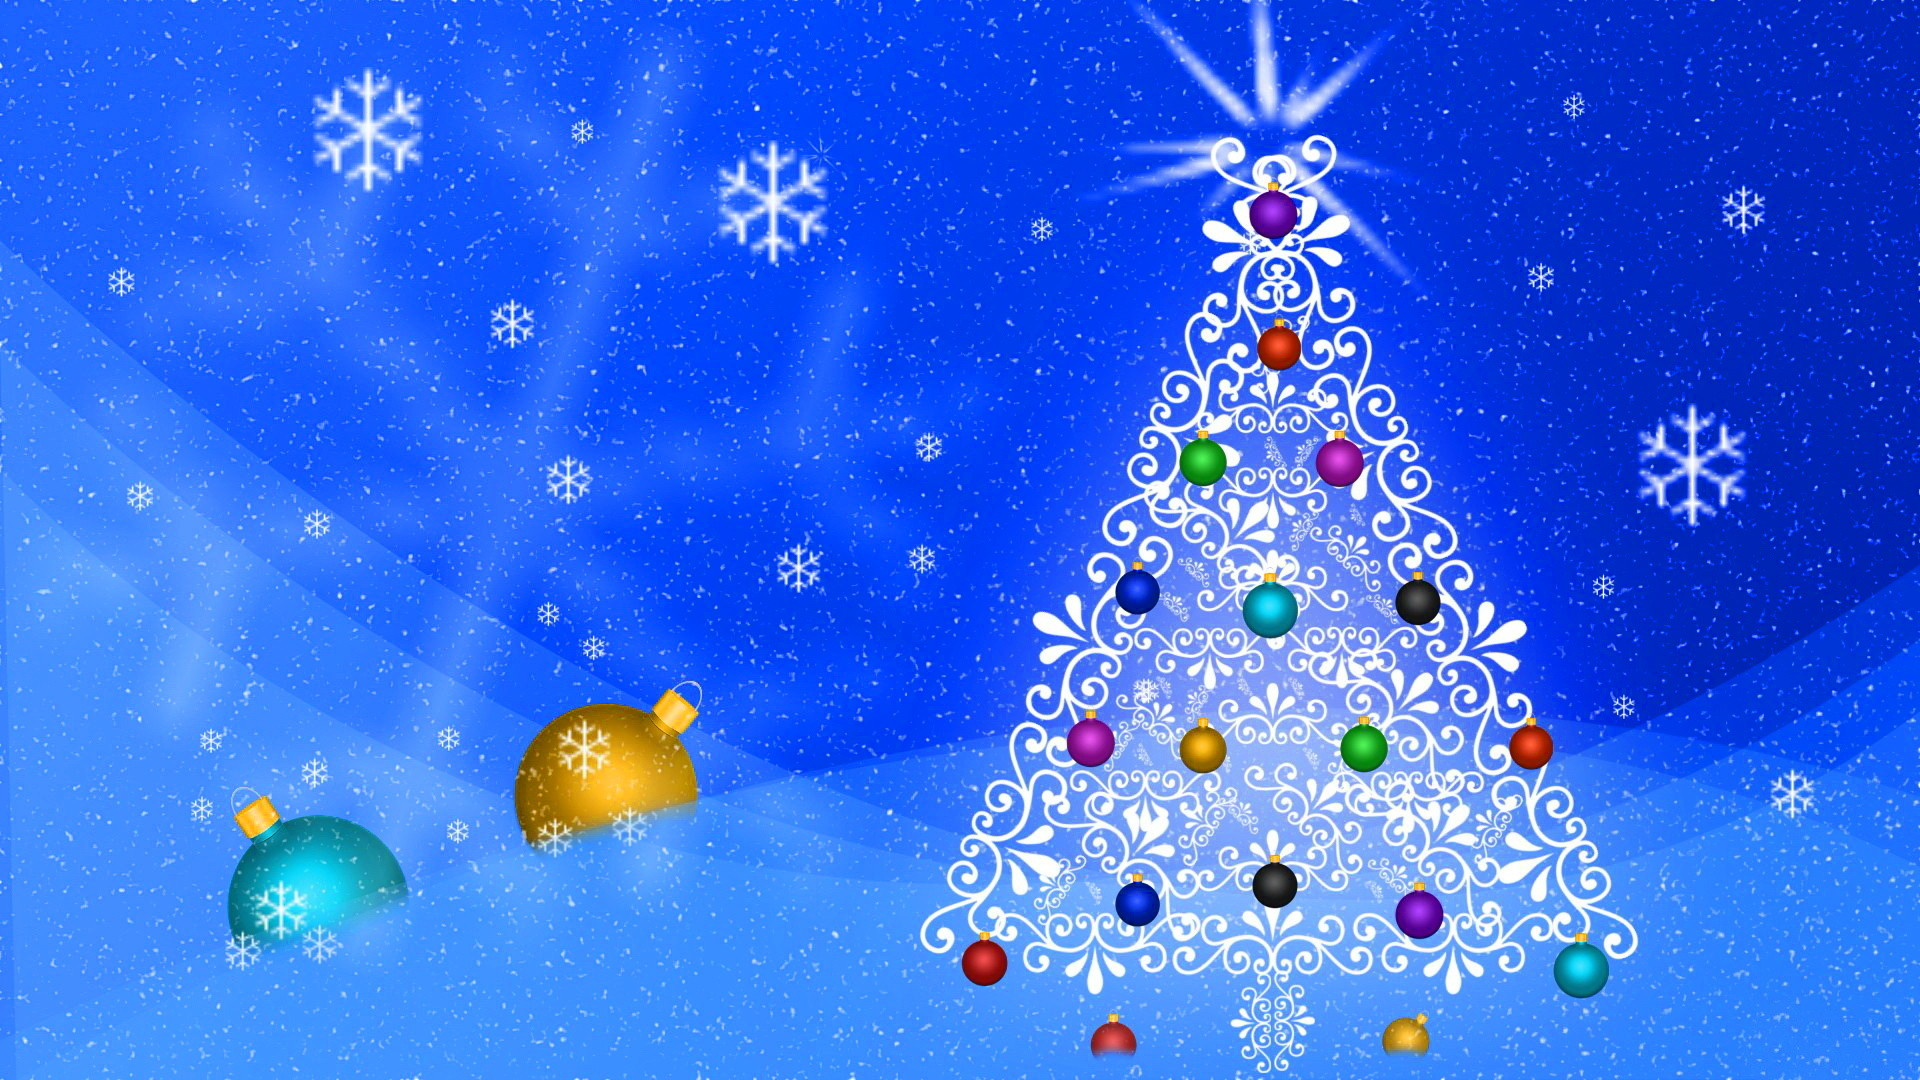 … Abstract Christmas Tree Blue Background